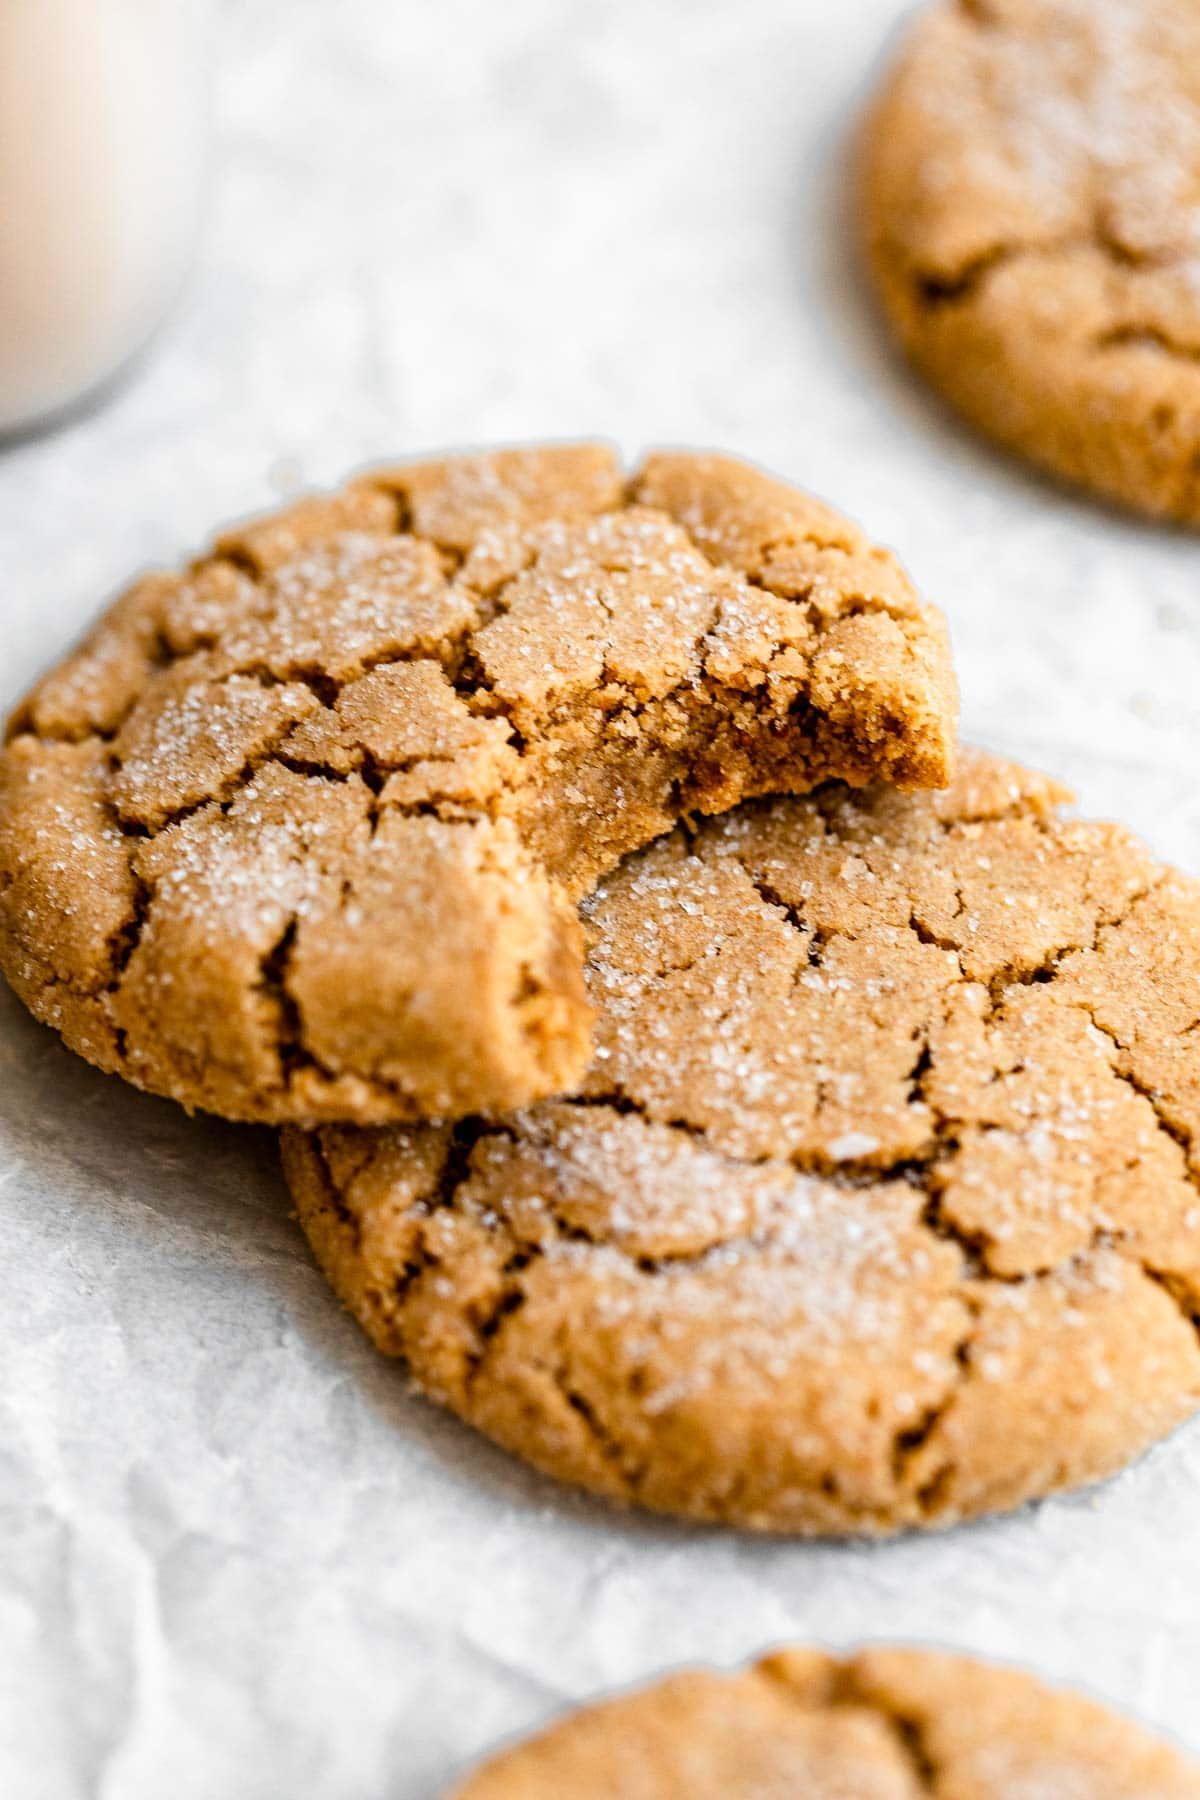 One vegan peanut butter cookie on the side with a bite taken out.